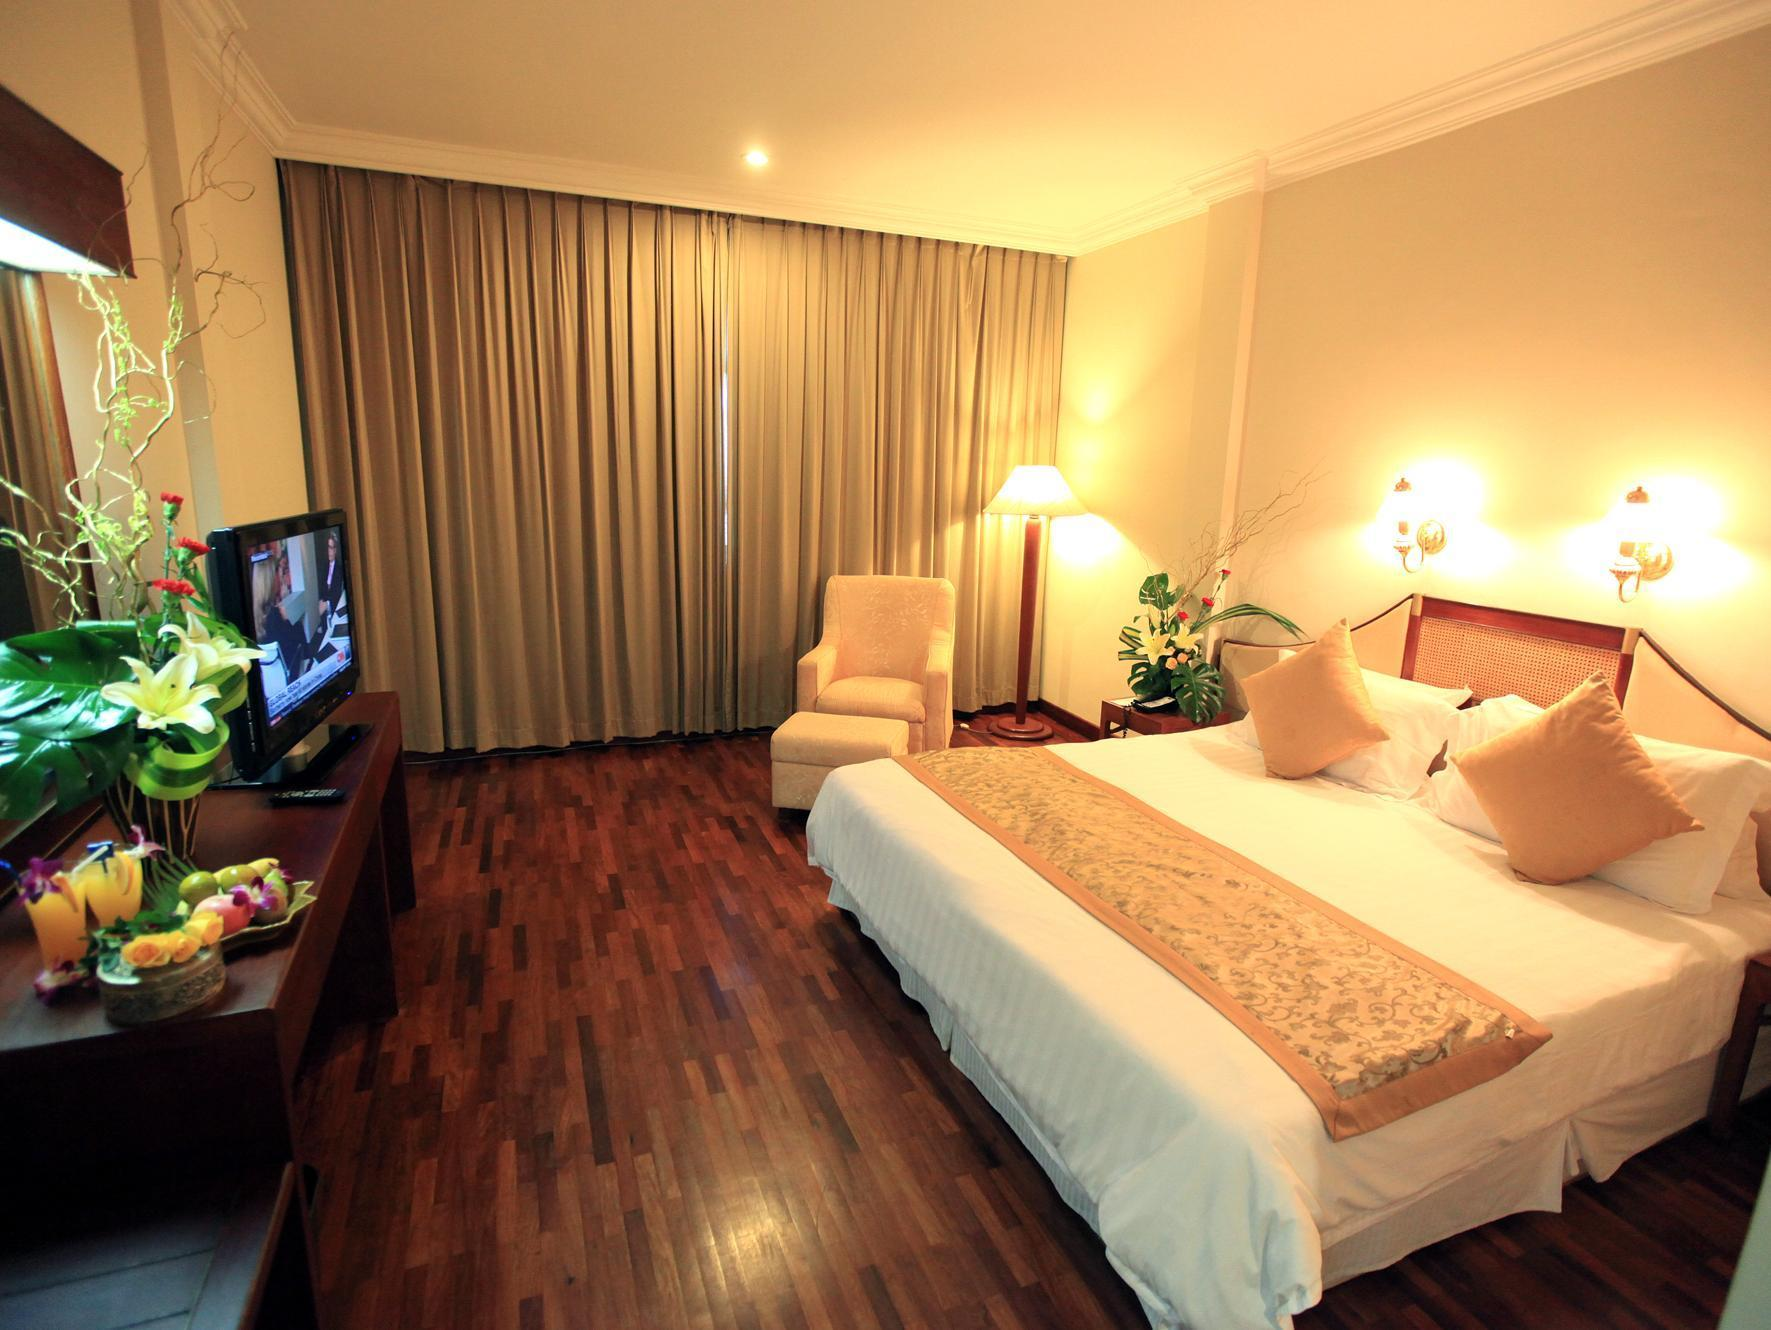 Standard Queen Room Hotel Special Offer - Flexible Rate